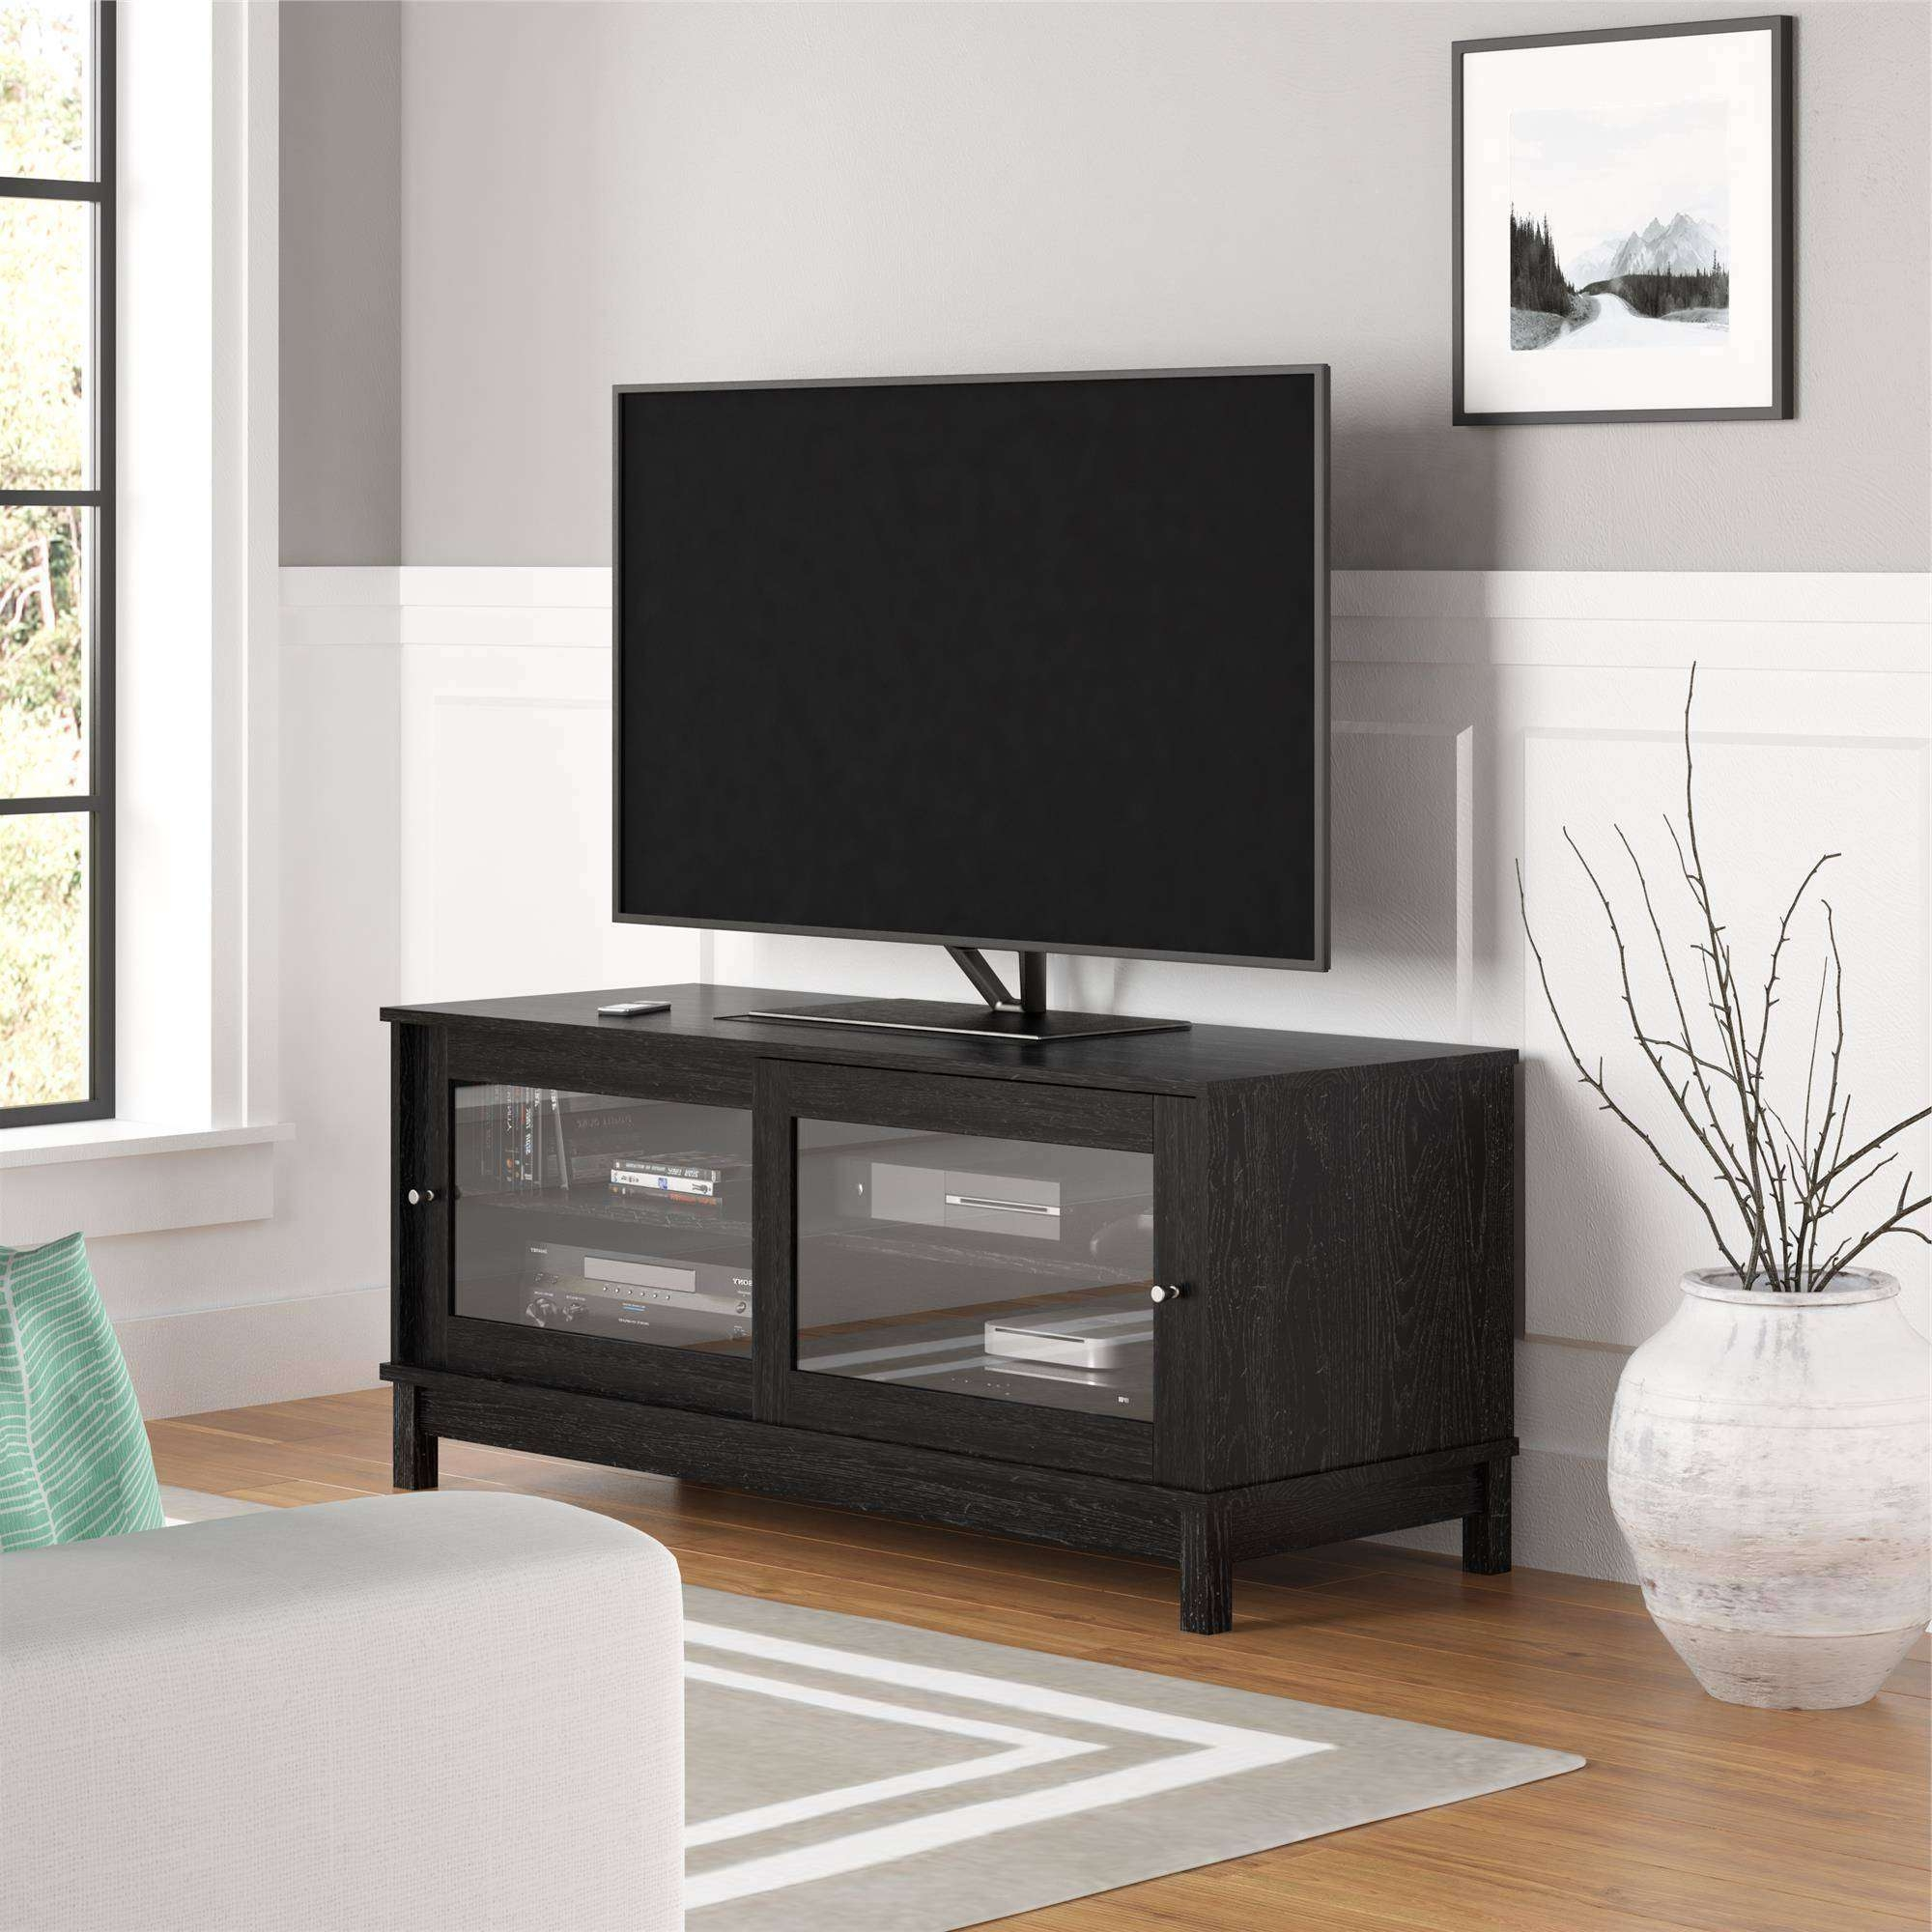 """Mainstays 55"""" Tv Stand With Sliding Glass Doors, Black Ebony Ash For Sleek Tv Stands (View 11 of 15)"""